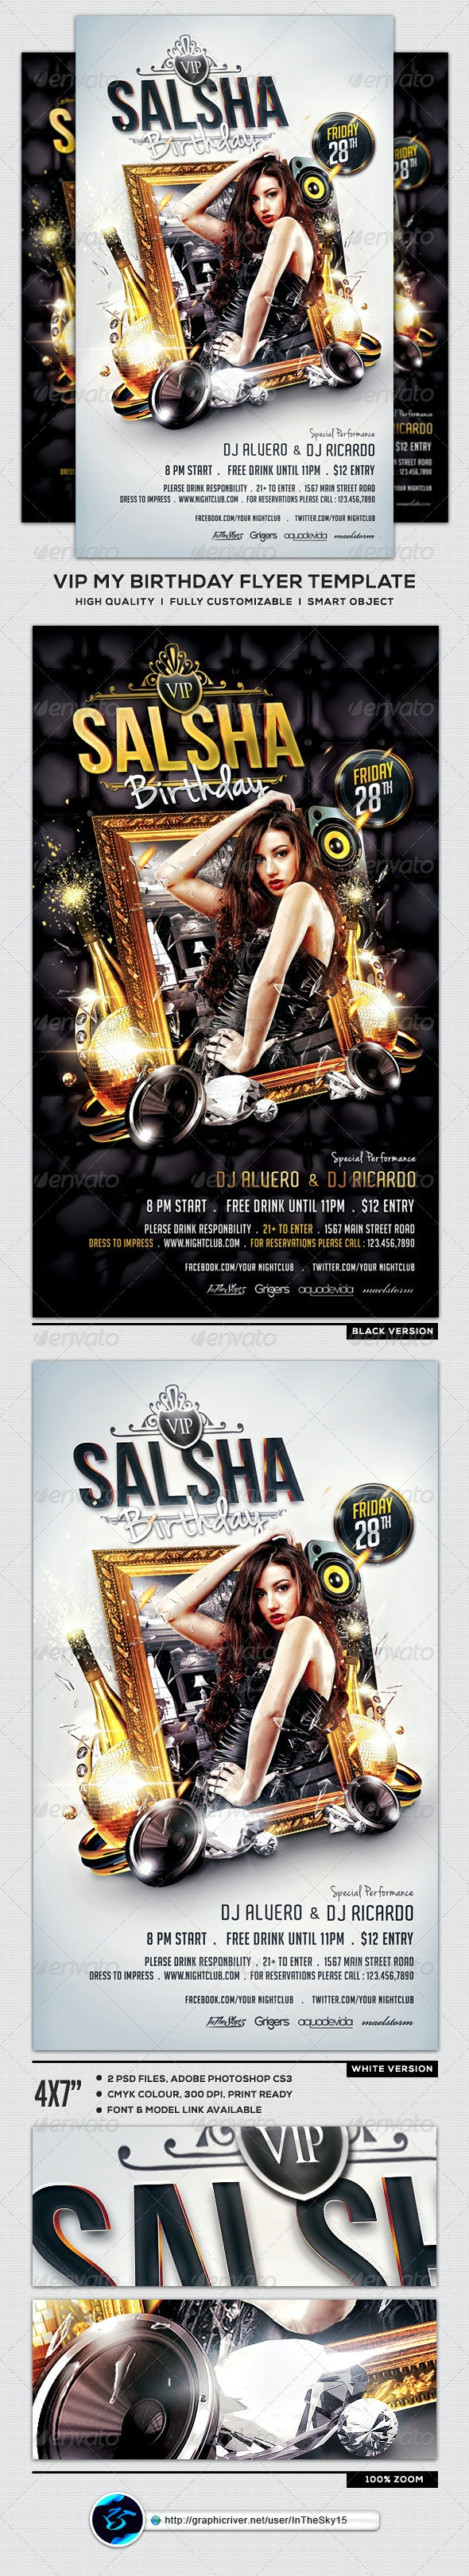 VIP My Birthday Flyer Template - Clubs & Parties Events